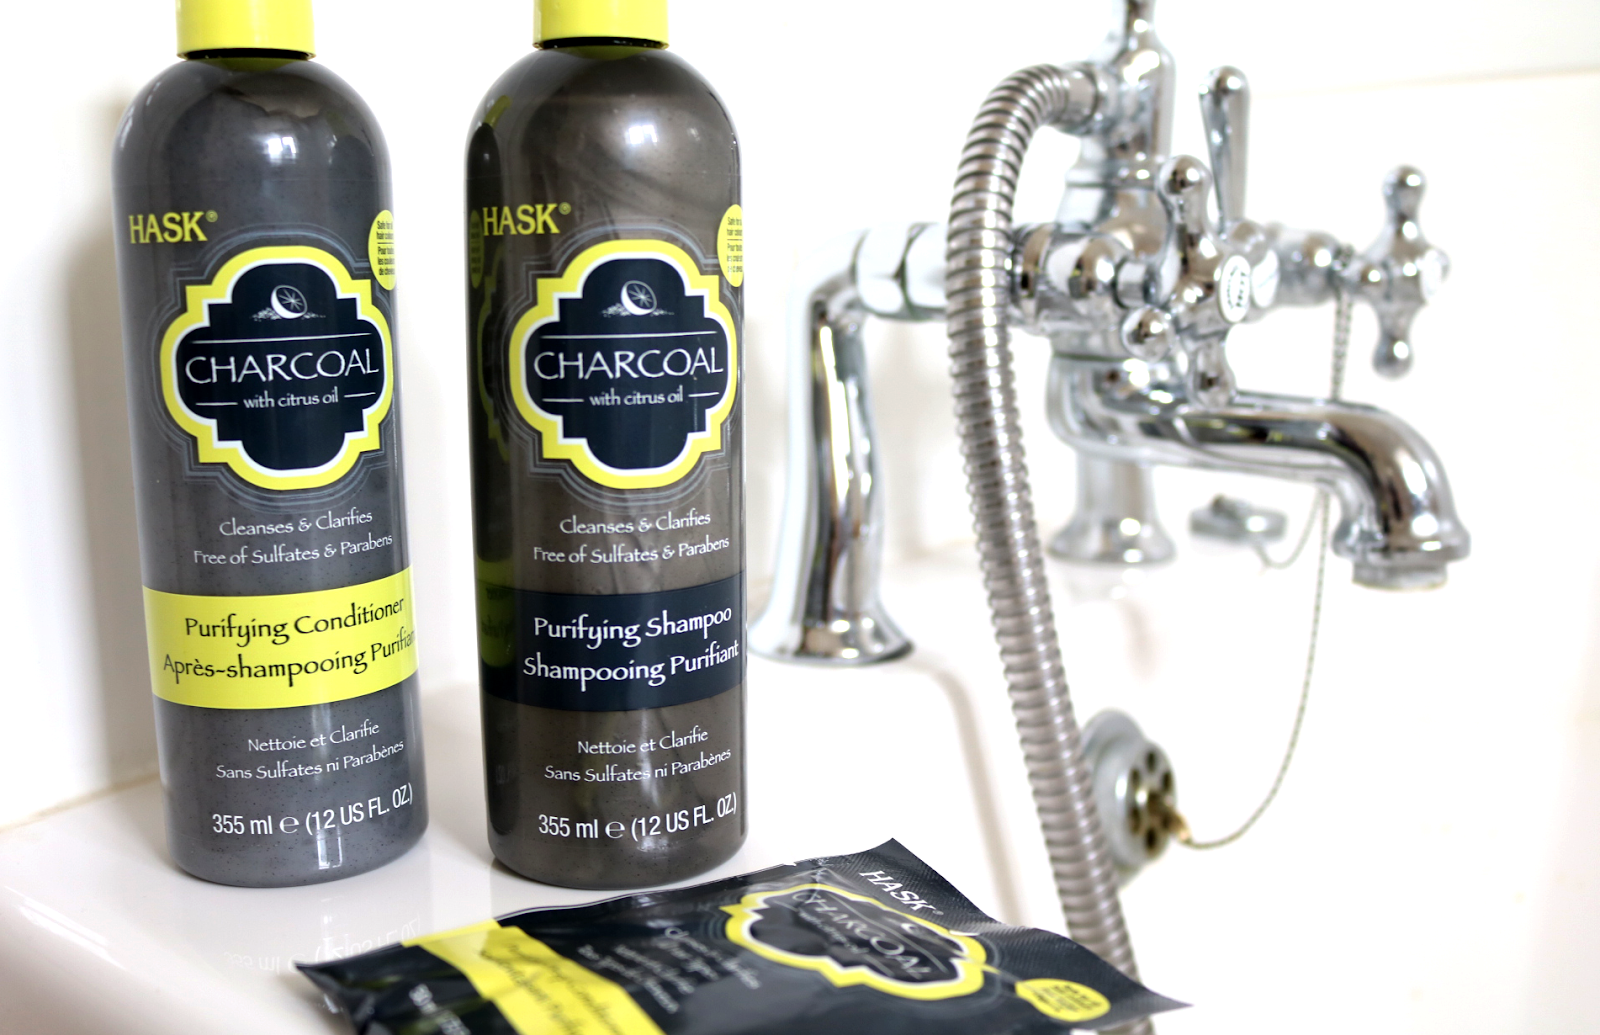 HASK Charcoal Purifying Shampoo & Conditoner + Unwined Deep Conditioners review